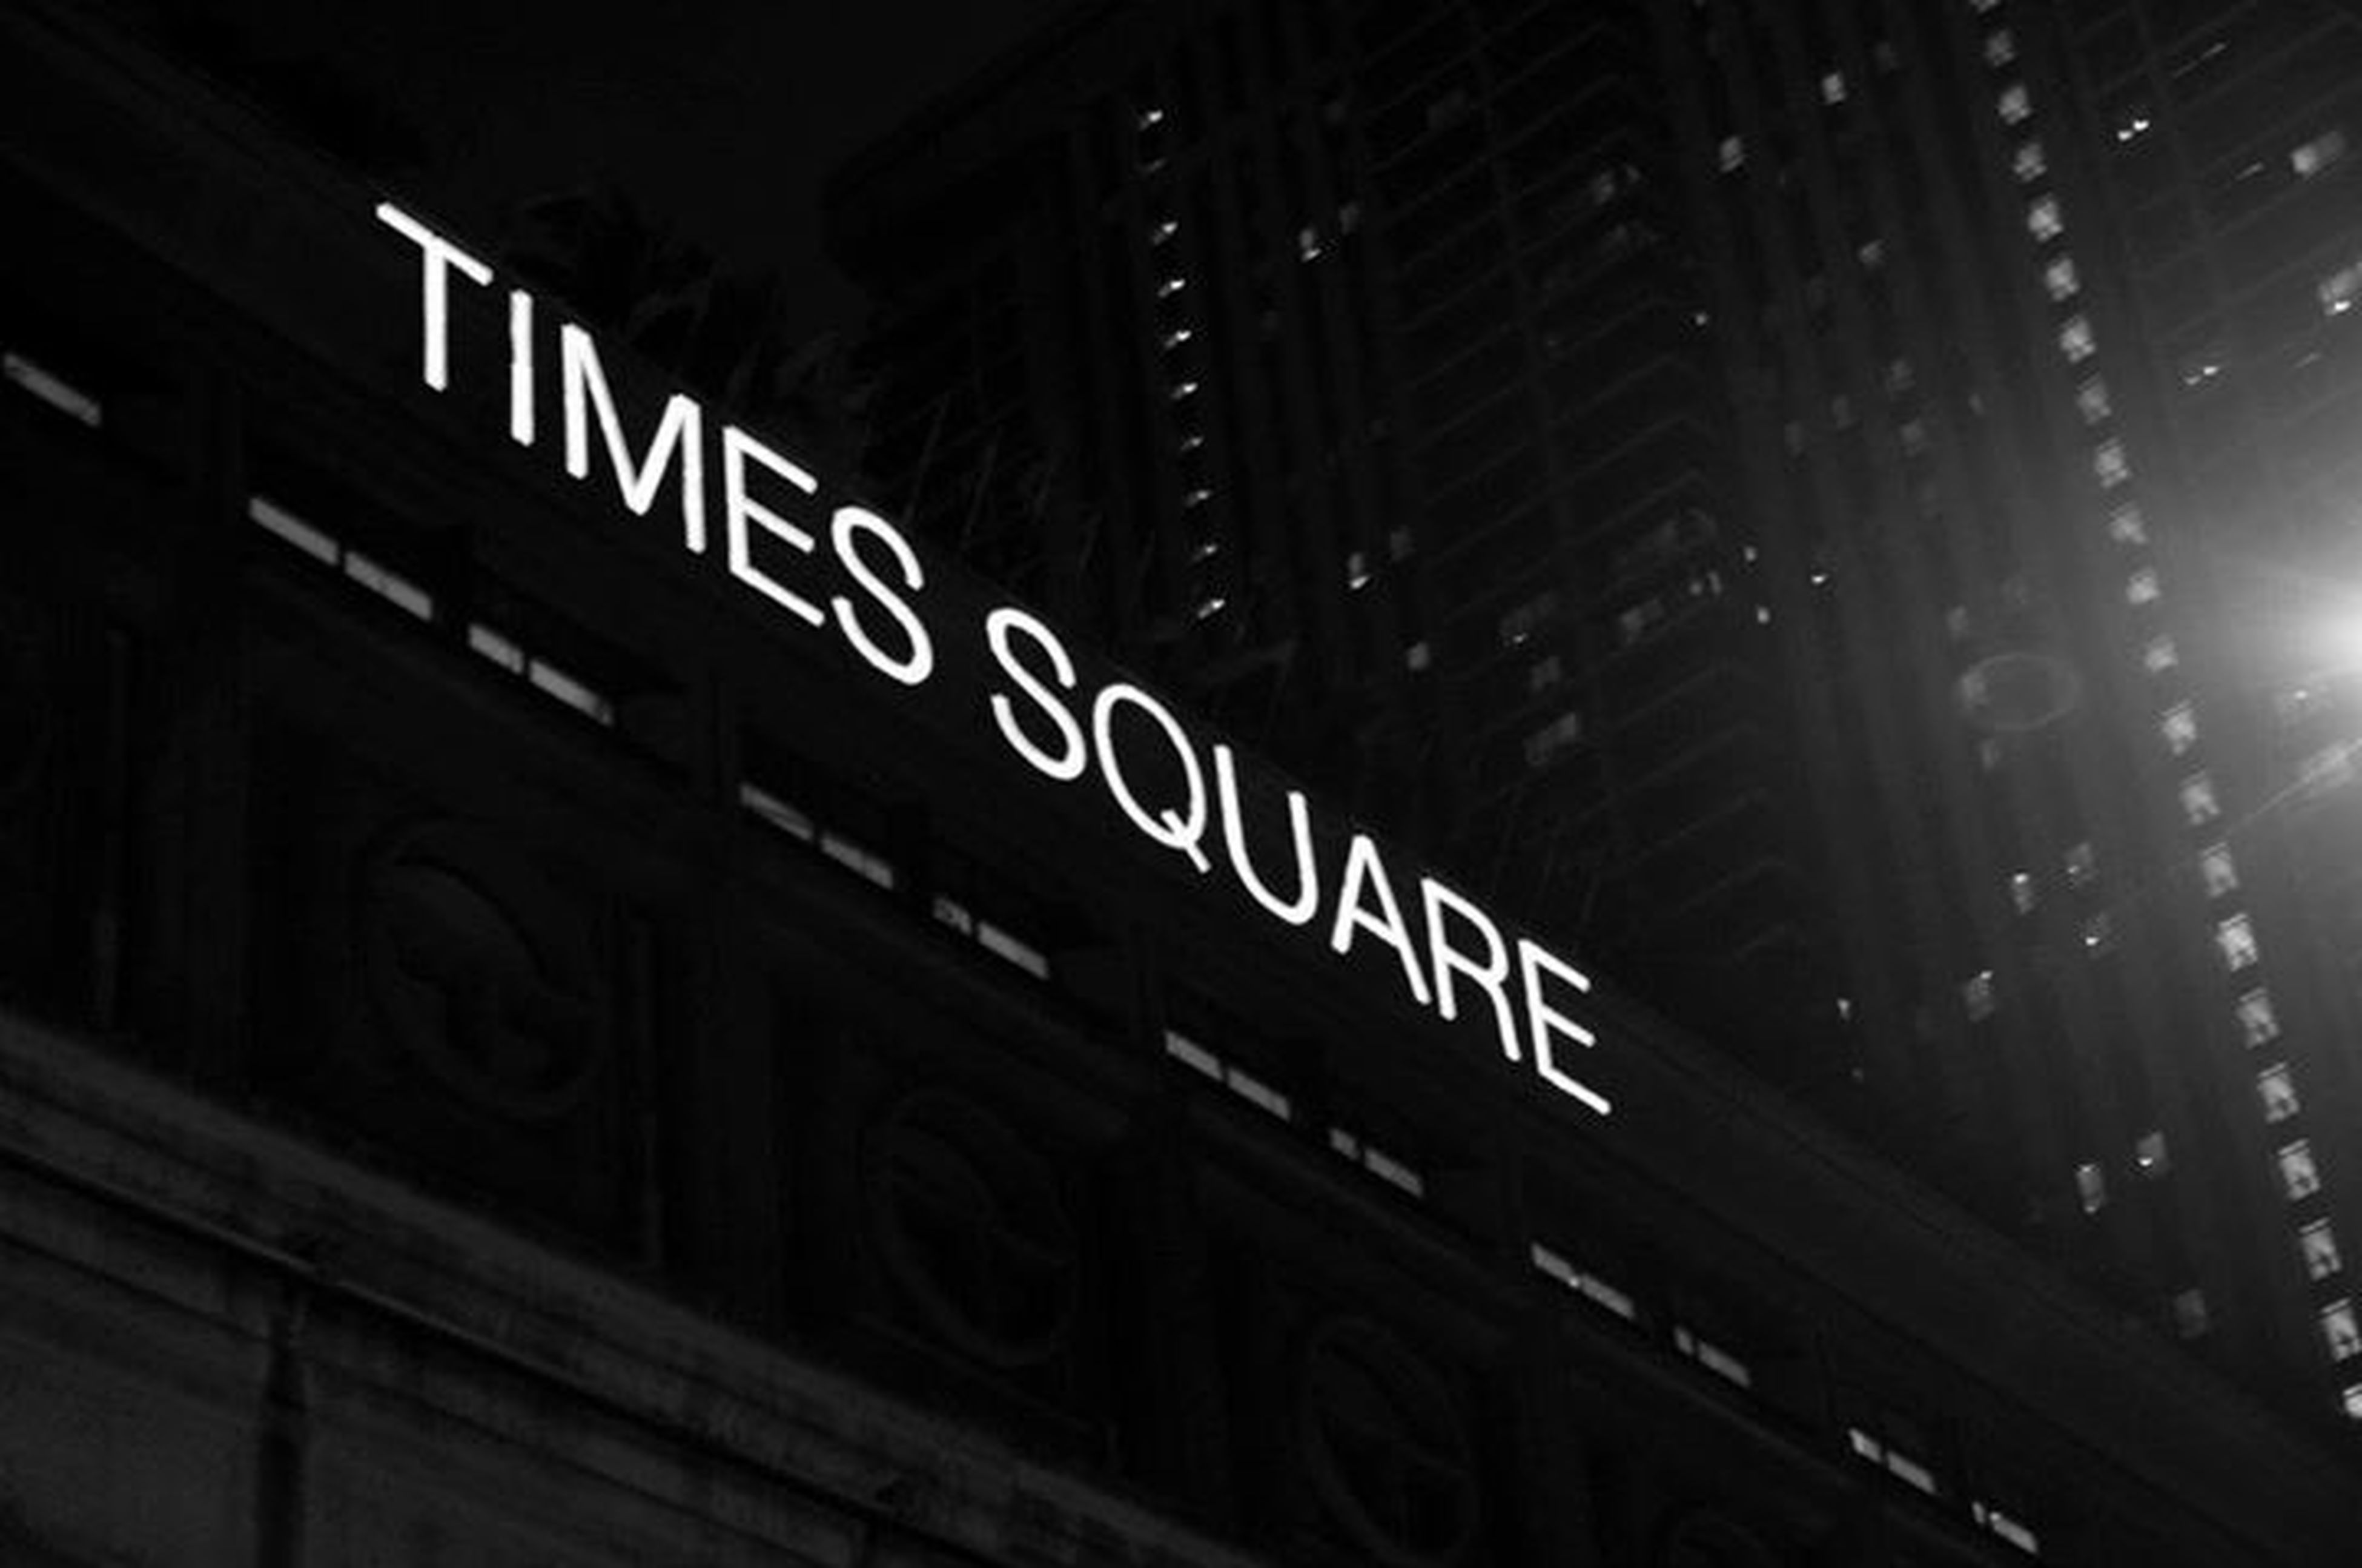 text, illuminated, western script, night, communication, low angle view, capital letter, information sign, built structure, information, architecture, indoors, sign, non-western script, guidance, lighting equipment, city, no people, building exterior, light - natural phenomenon